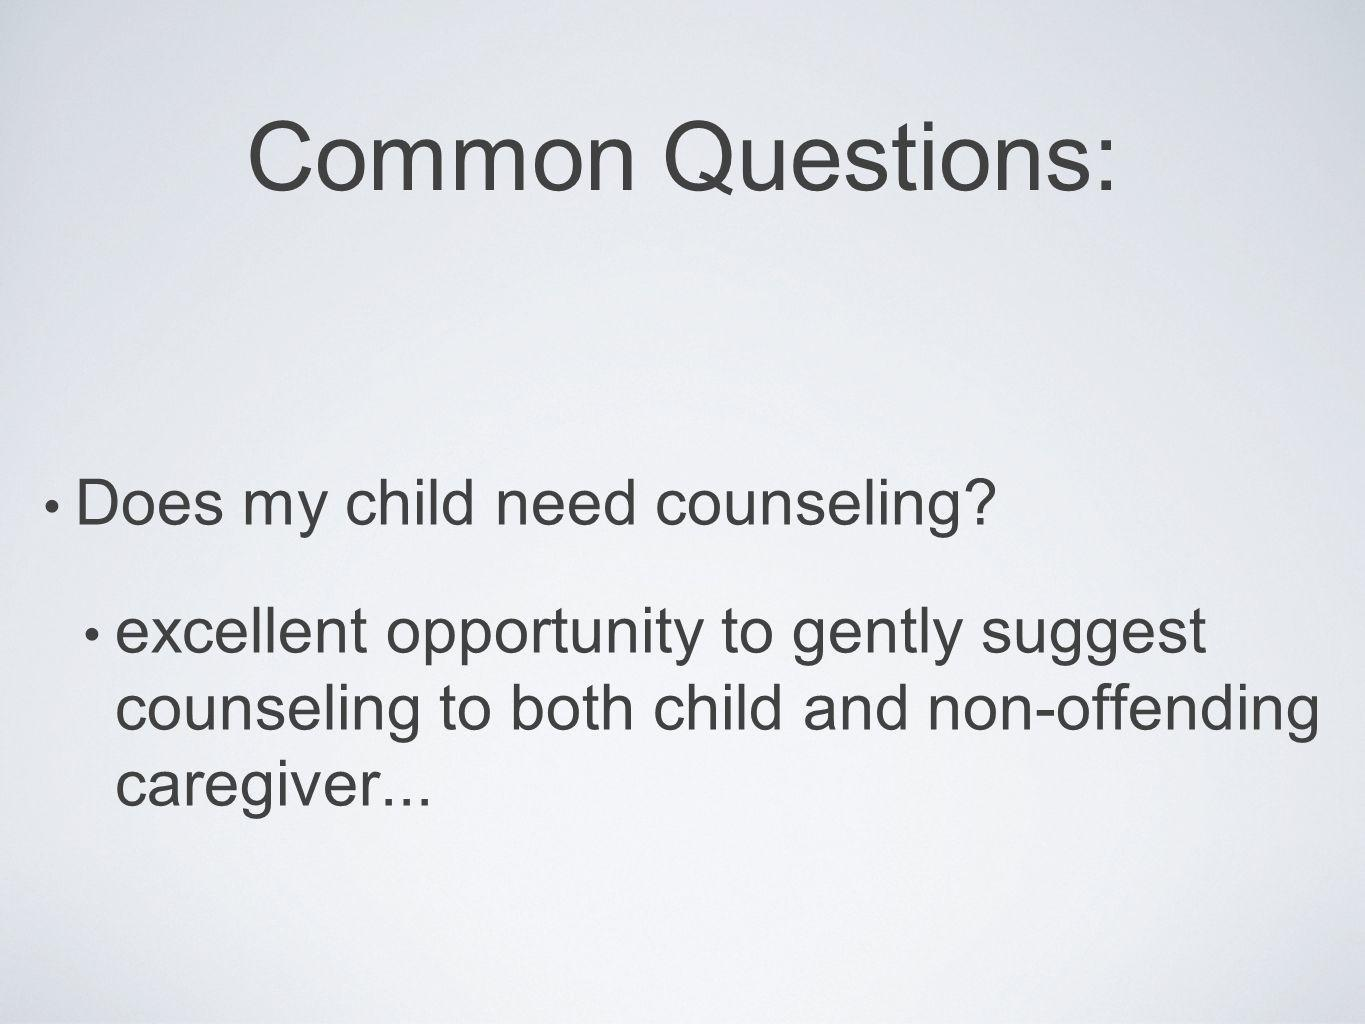 Common Questions: Does my child need counseling